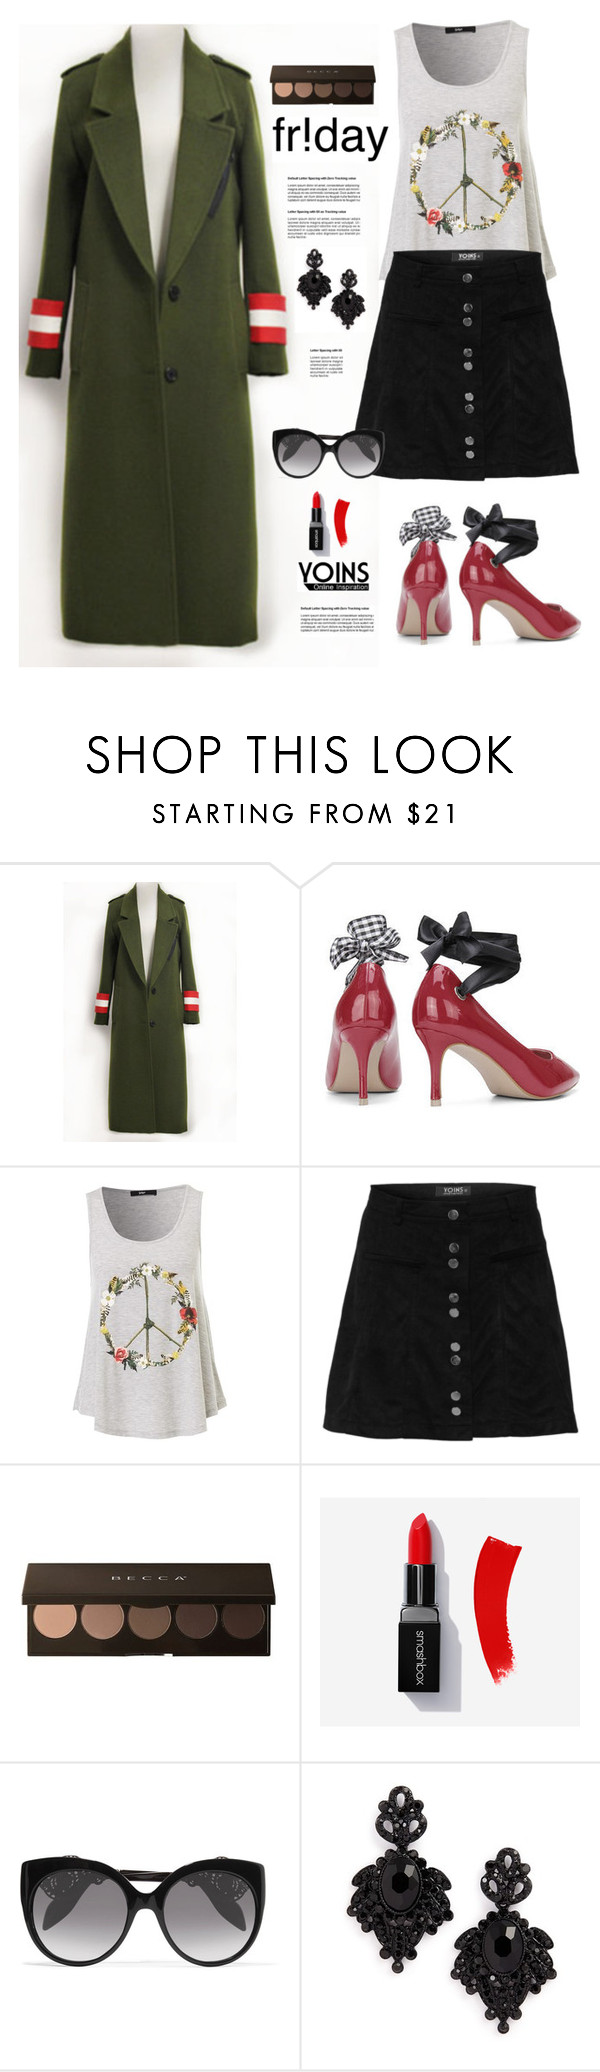 """Yoins.com: Friday!!"" by hamaly ❤ liked on Polyvore featuring Alexander McQueen, Tasha, yoins, yoinscollection and loveyoins"